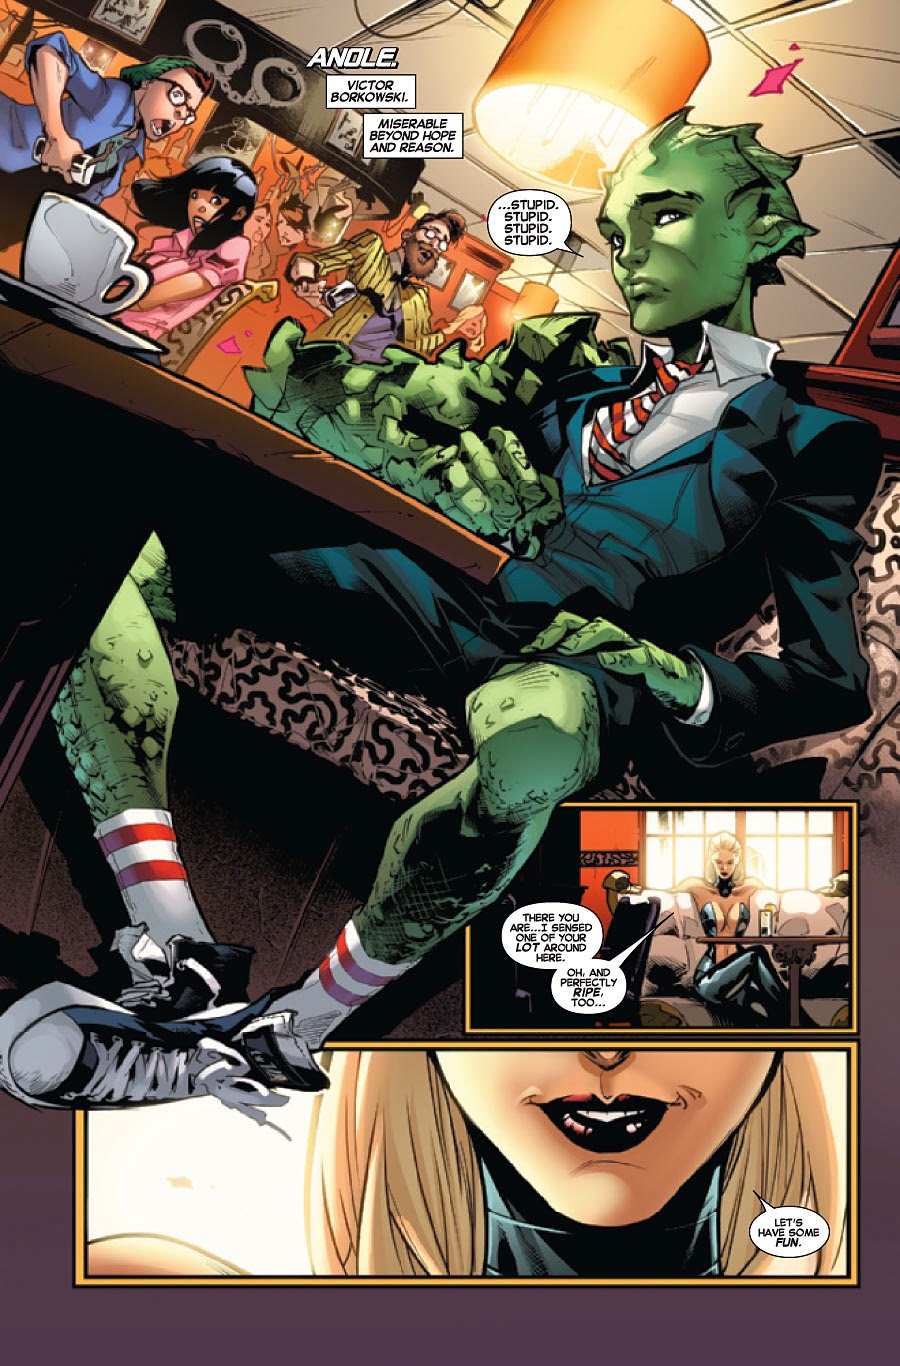 Anole stars in Amazing X-Men 13